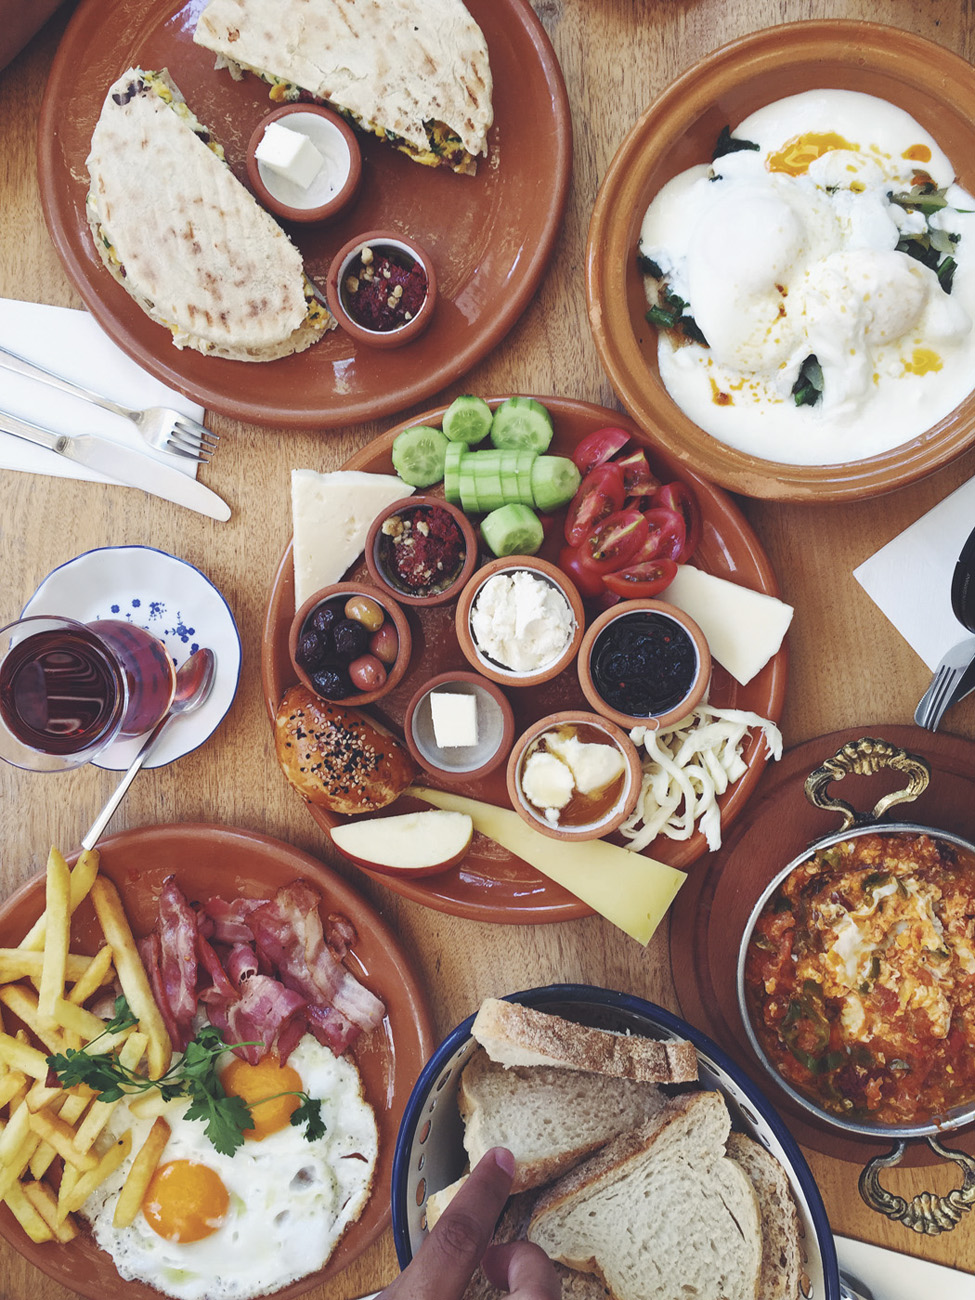 turkey traditional turkish breakfast spread kahve6 restaurant